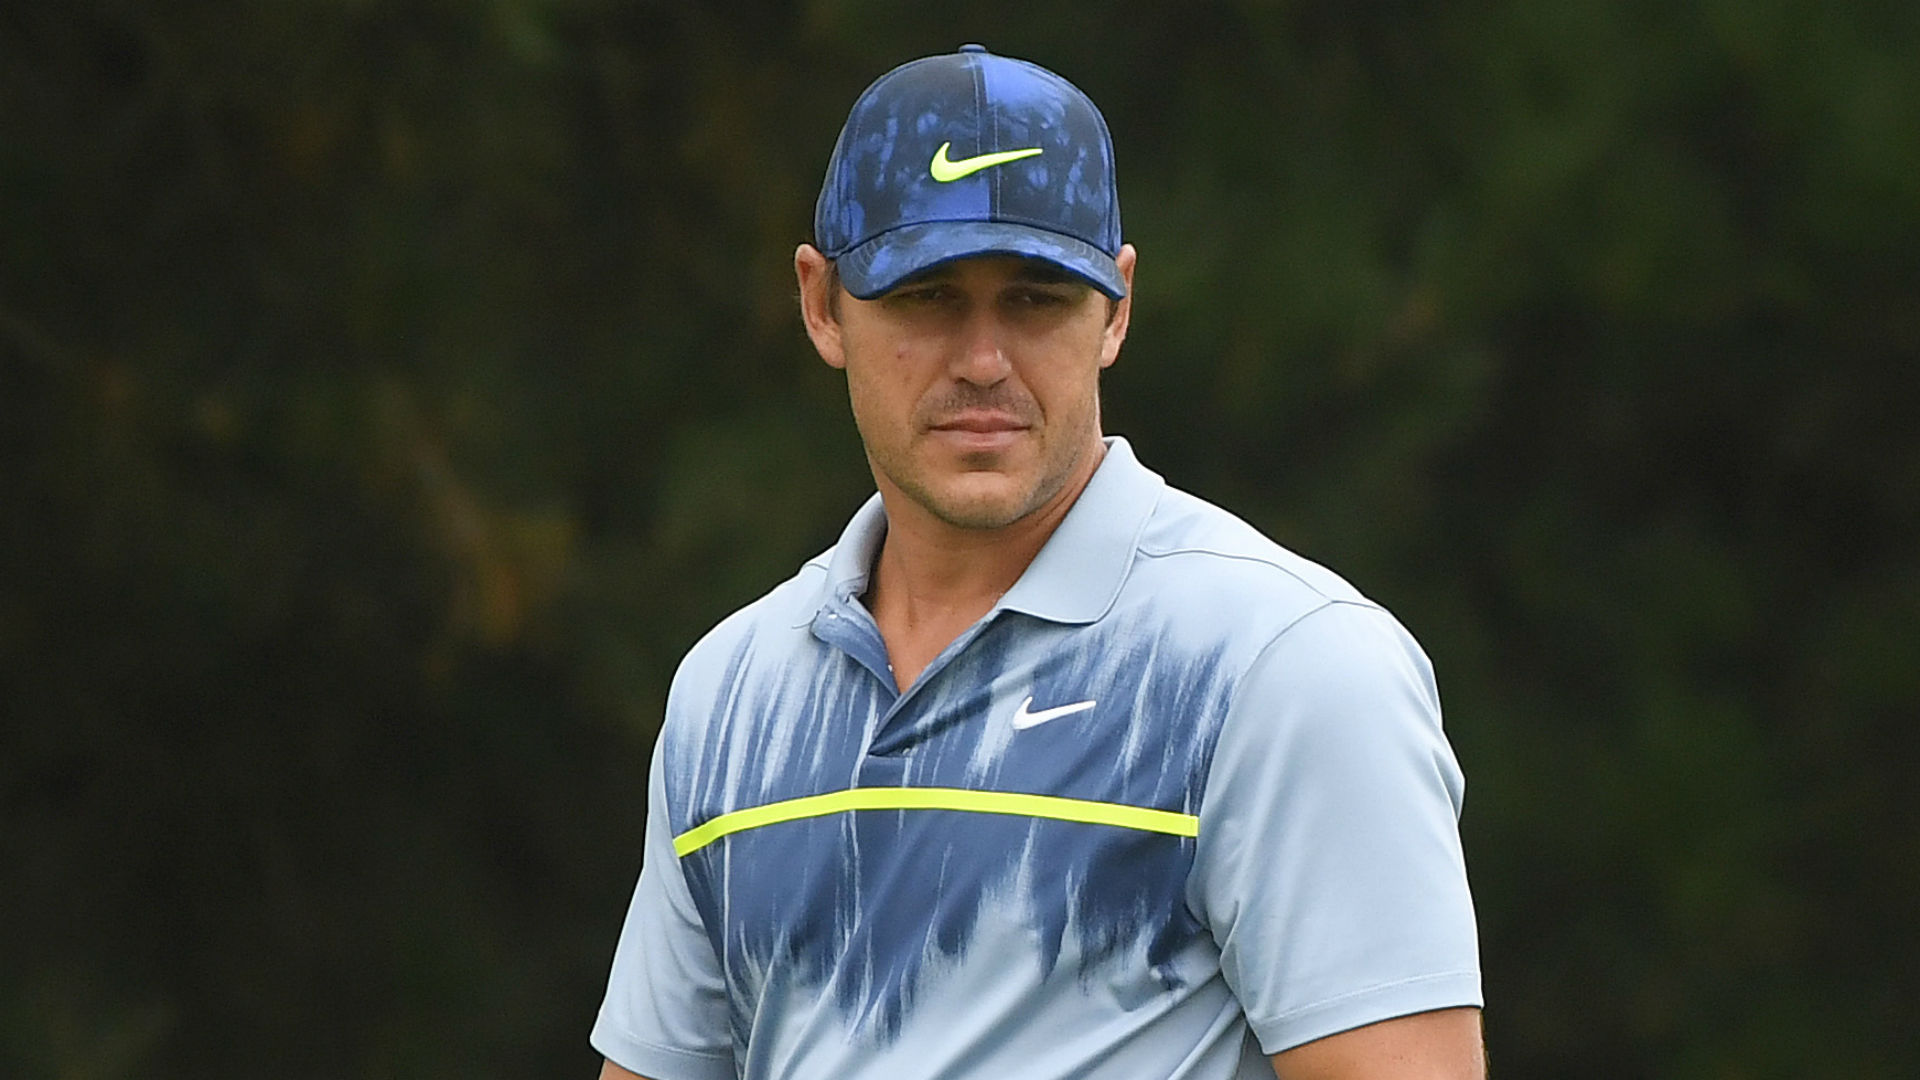 Koepka out of The Players Championship due to knee injury